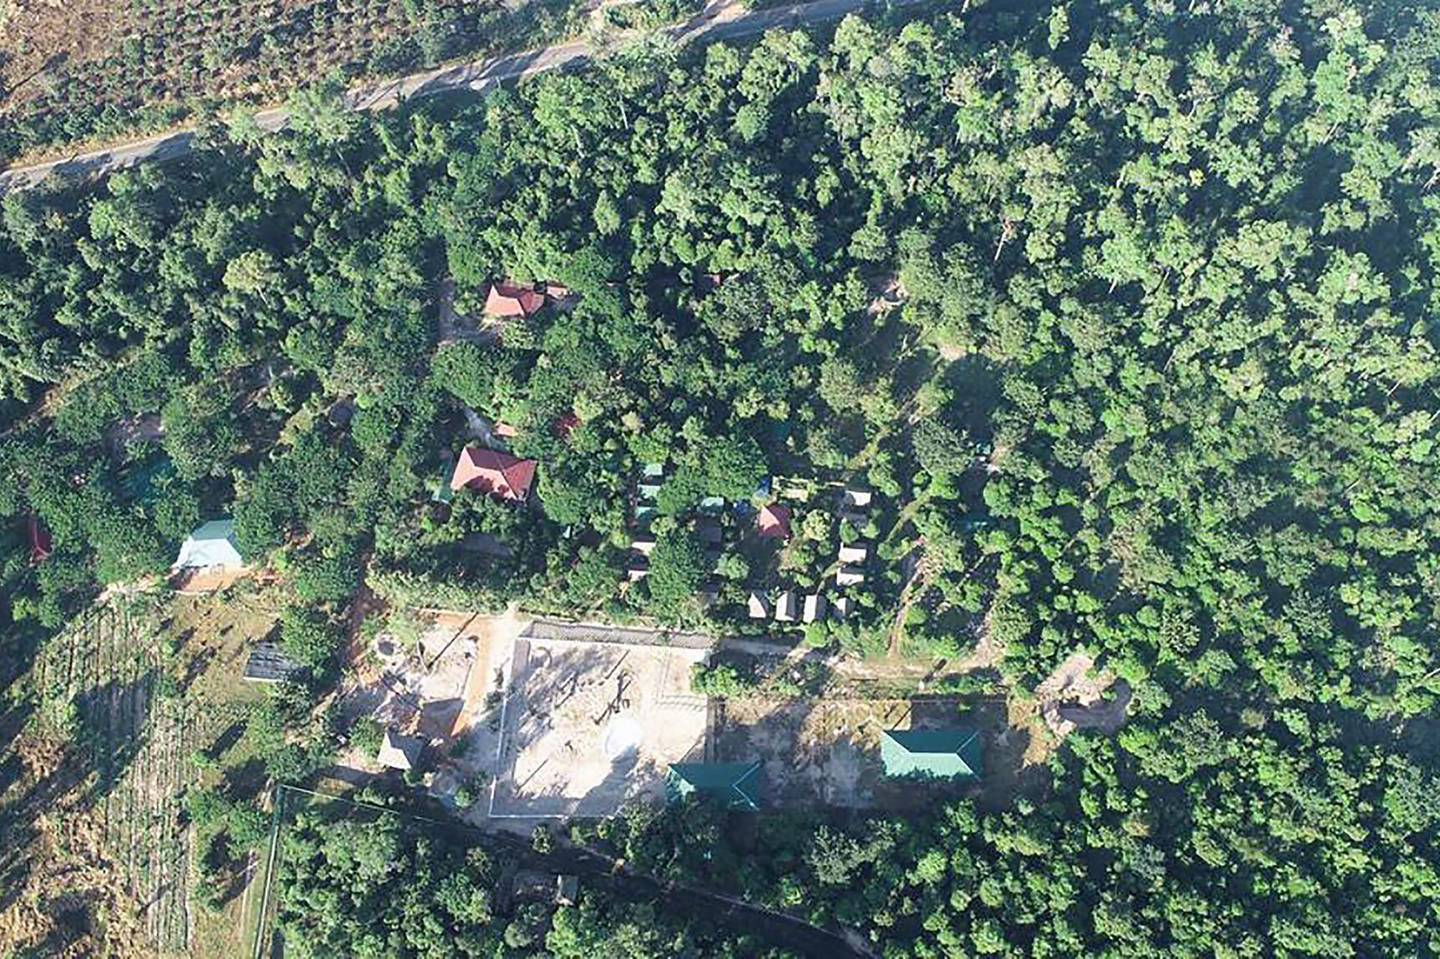 """This undated aerial handout photo released by the Cambodian Ministry of Environment on November 30, 2020 shows the under-construction enclosure for the Asian elephant Kaavan that is arriving in Cambodia from Pakistan, at the Kulen Prom Tep Wildlife Sanctuary in Oddar Meanchey province.  - RESTRICTED TO EDITORIAL USE - MANDATORY CREDIT """"AFP PHOTO / Cambodian Ministry of Environment """" - NO MARKETING - NO ADVERTISING CAMPAIGNS - DISTRIBUTED AS A SERVICE TO CLIENTS  / AFP / Cambodian Ministry of Environment / Handout / RESTRICTED TO EDITORIAL USE - MANDATORY CREDIT """"AFP PHOTO / Cambodian Ministry of Environment """" - NO MARKETING - NO ADVERTISING CAMPAIGNS - DISTRIBUTED AS A SERVICE TO CLIENTS"""